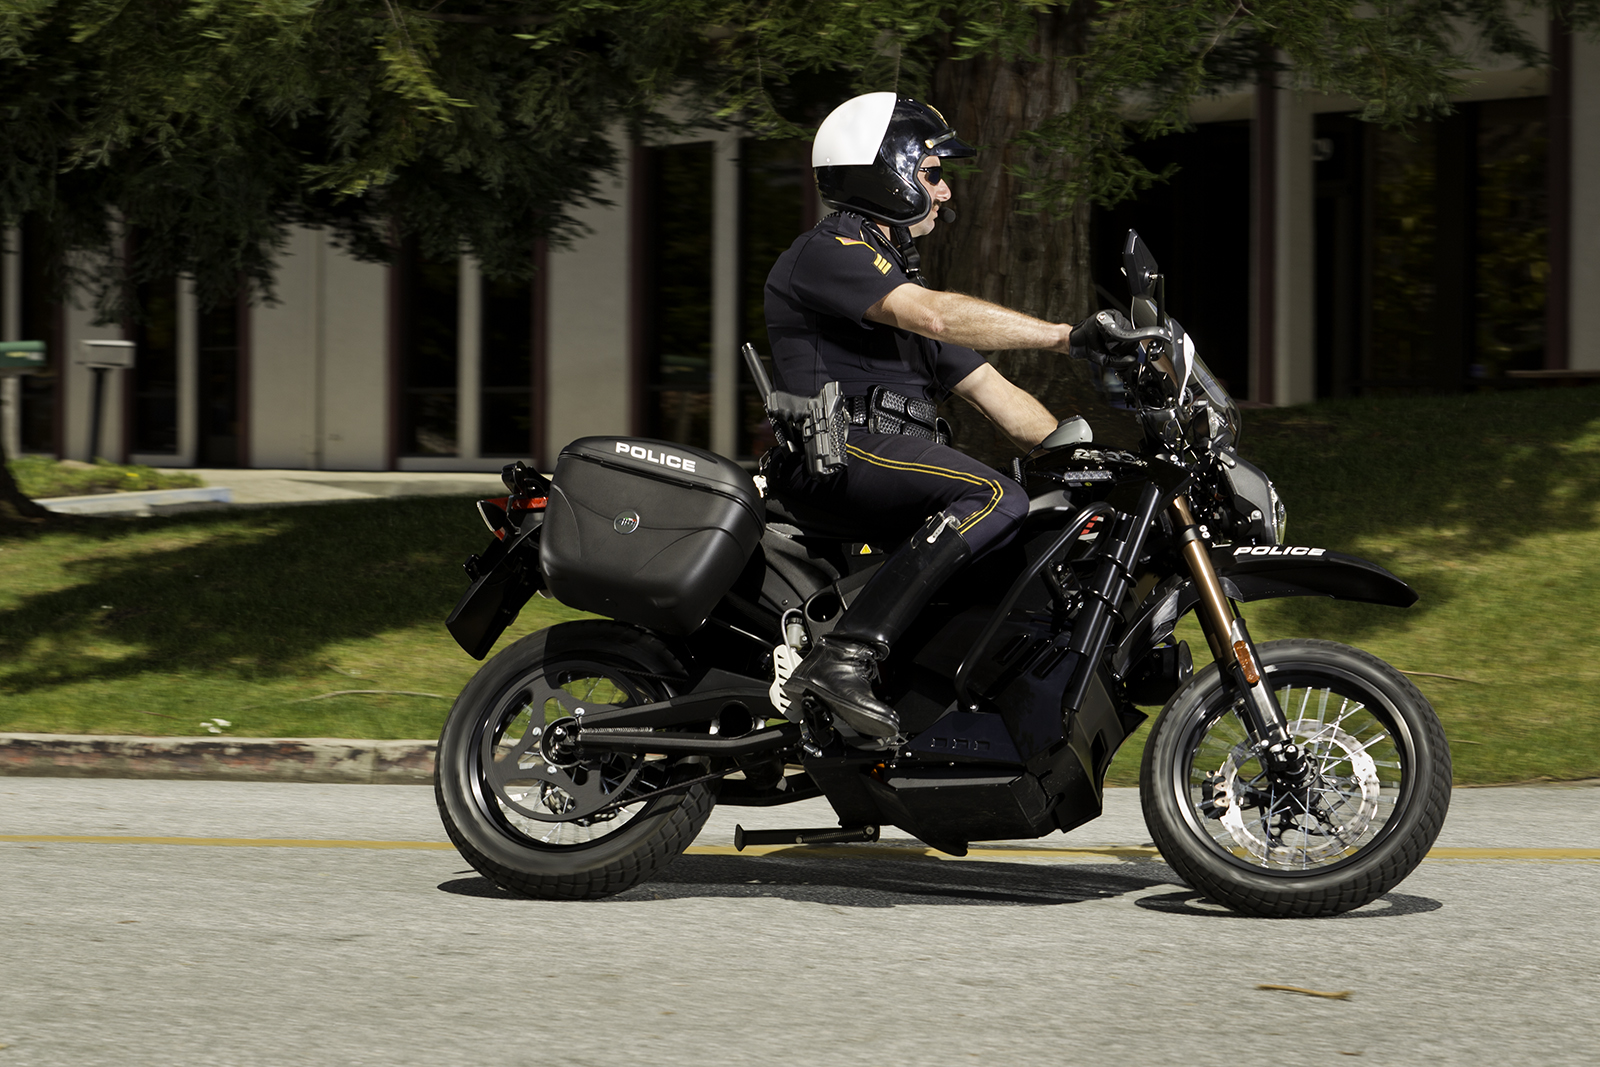 2012 Zero DS Police Motorcycles: Scotts Valley 6